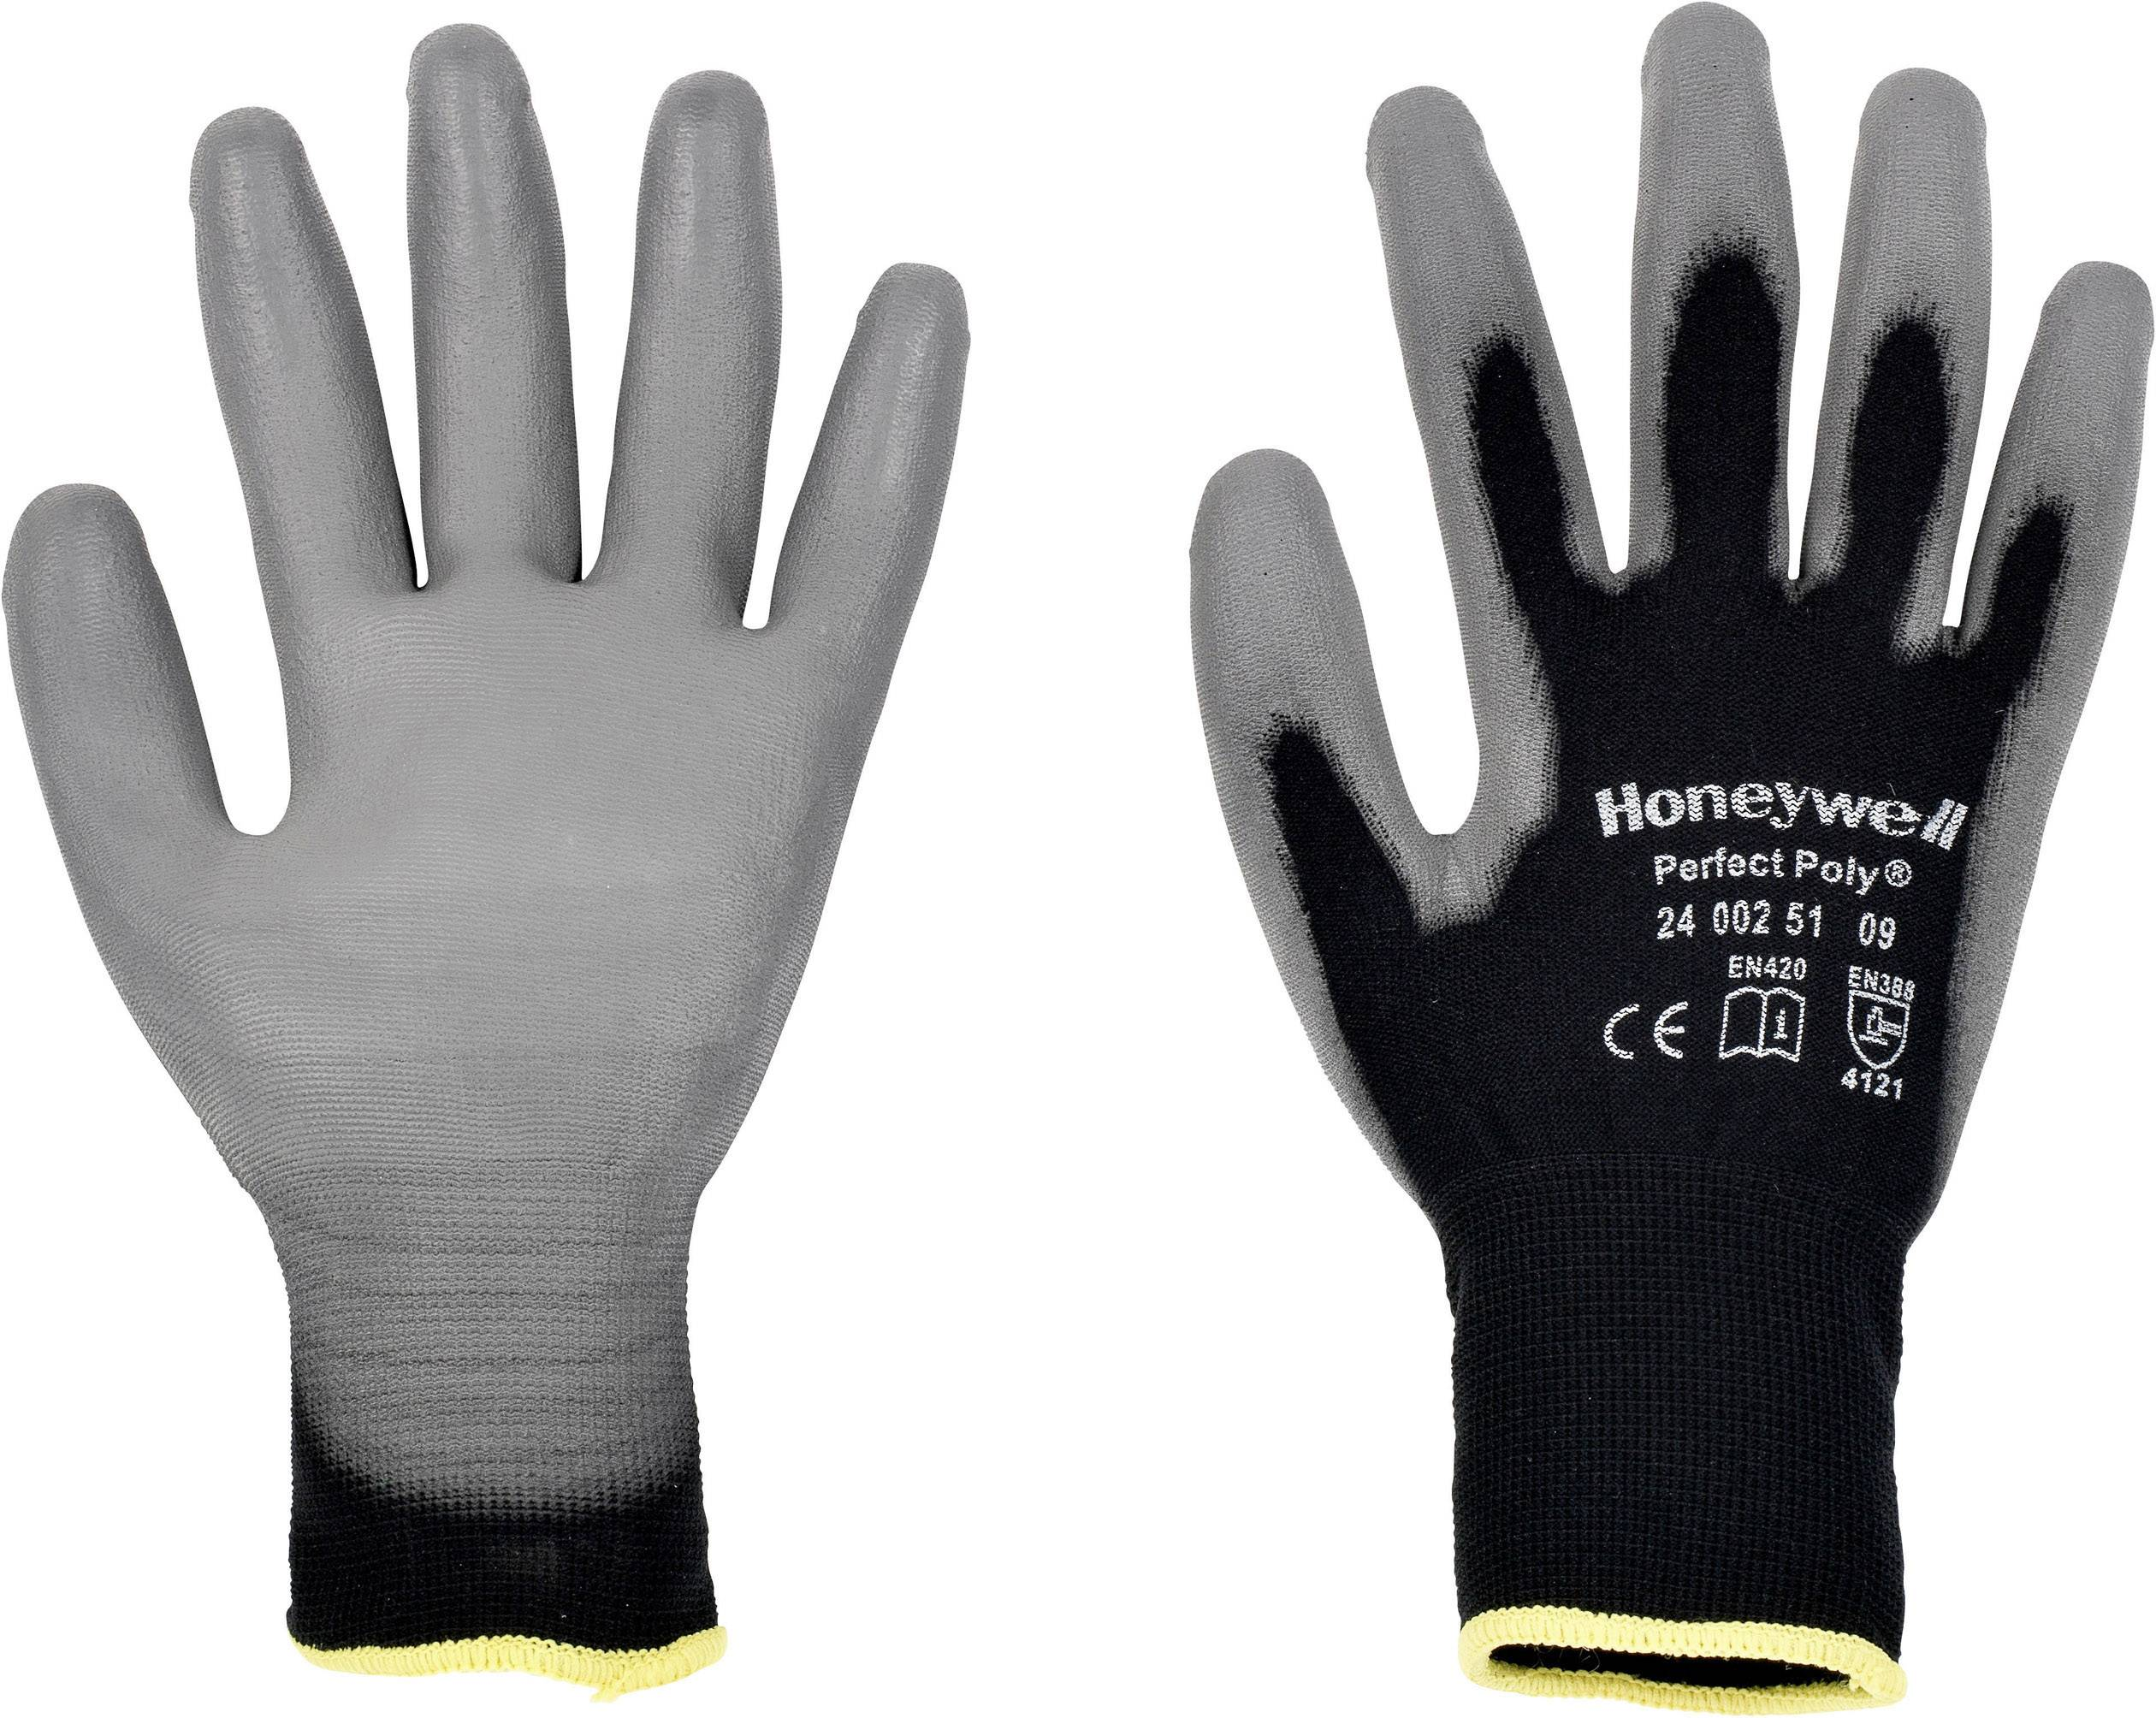 Pracovné rukavice Perfect Fit GANTS NOIRS PERFECTPOLY . 2400251, velikost rukavic: 7, S